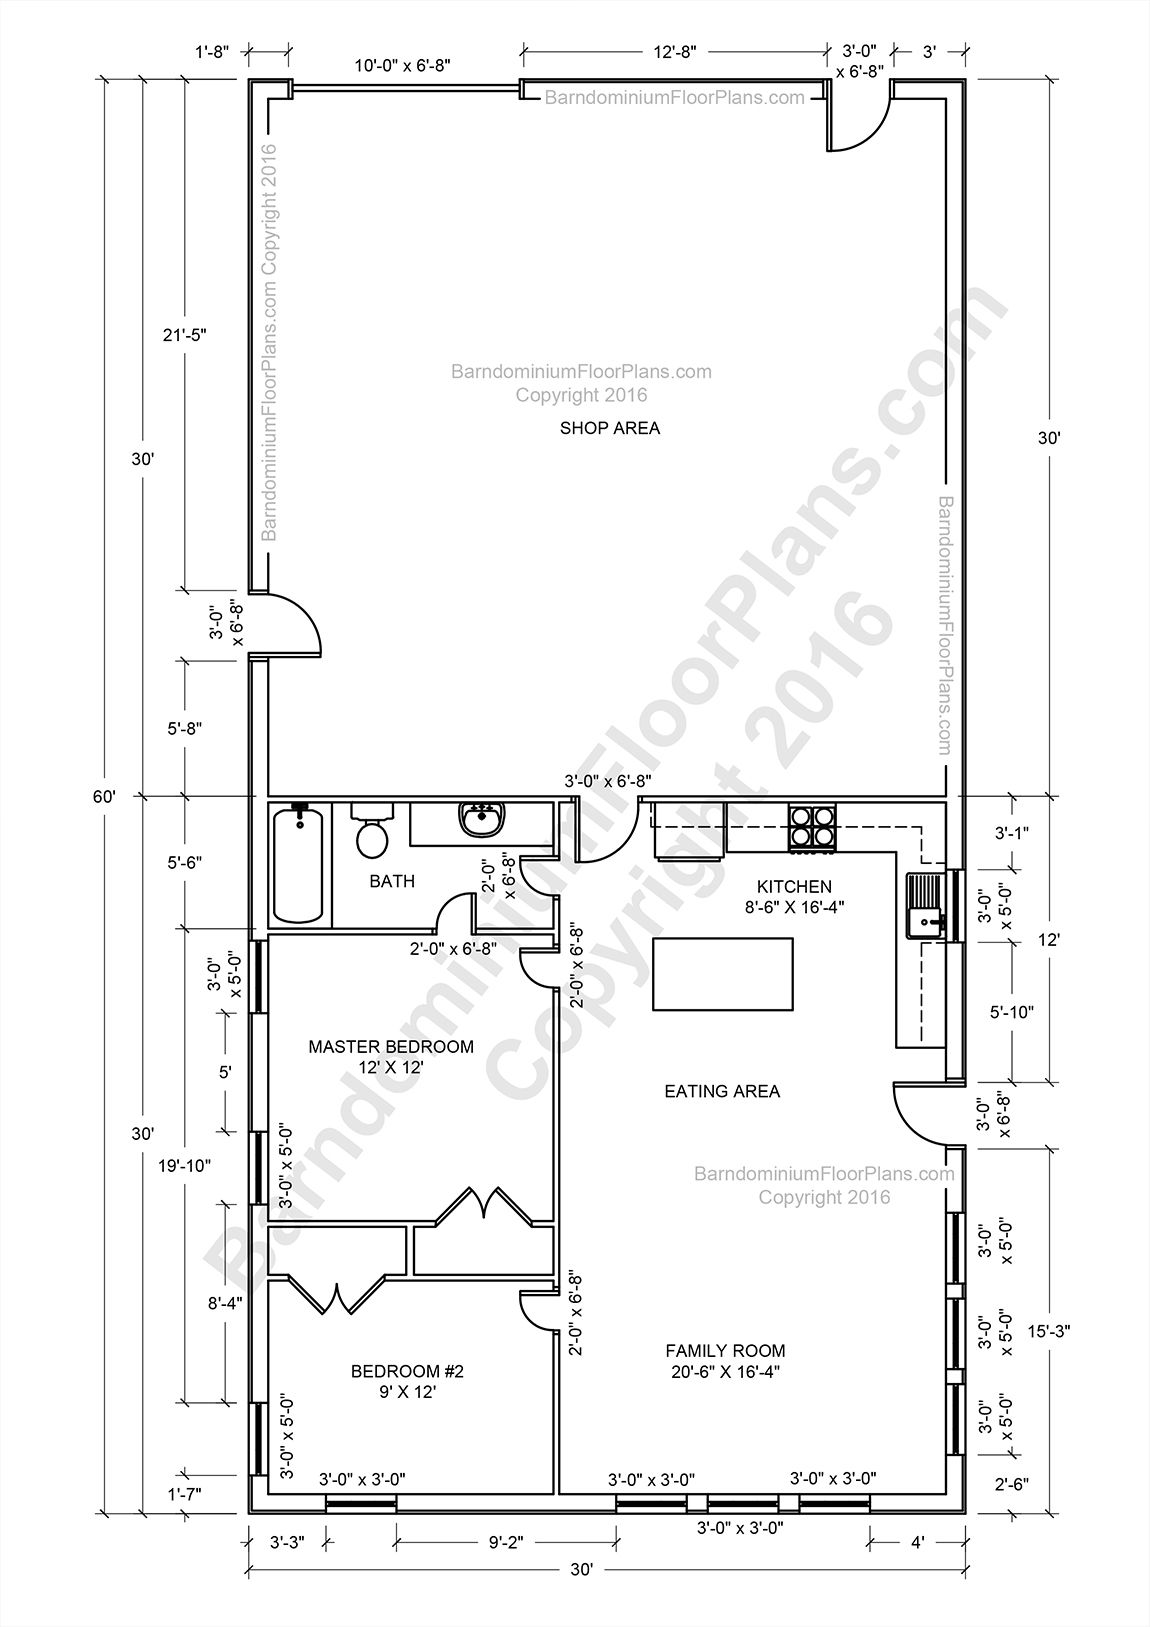 house homes plans houses lovely barn floor photos plan barns pole of photo bibserver poles free awesome home